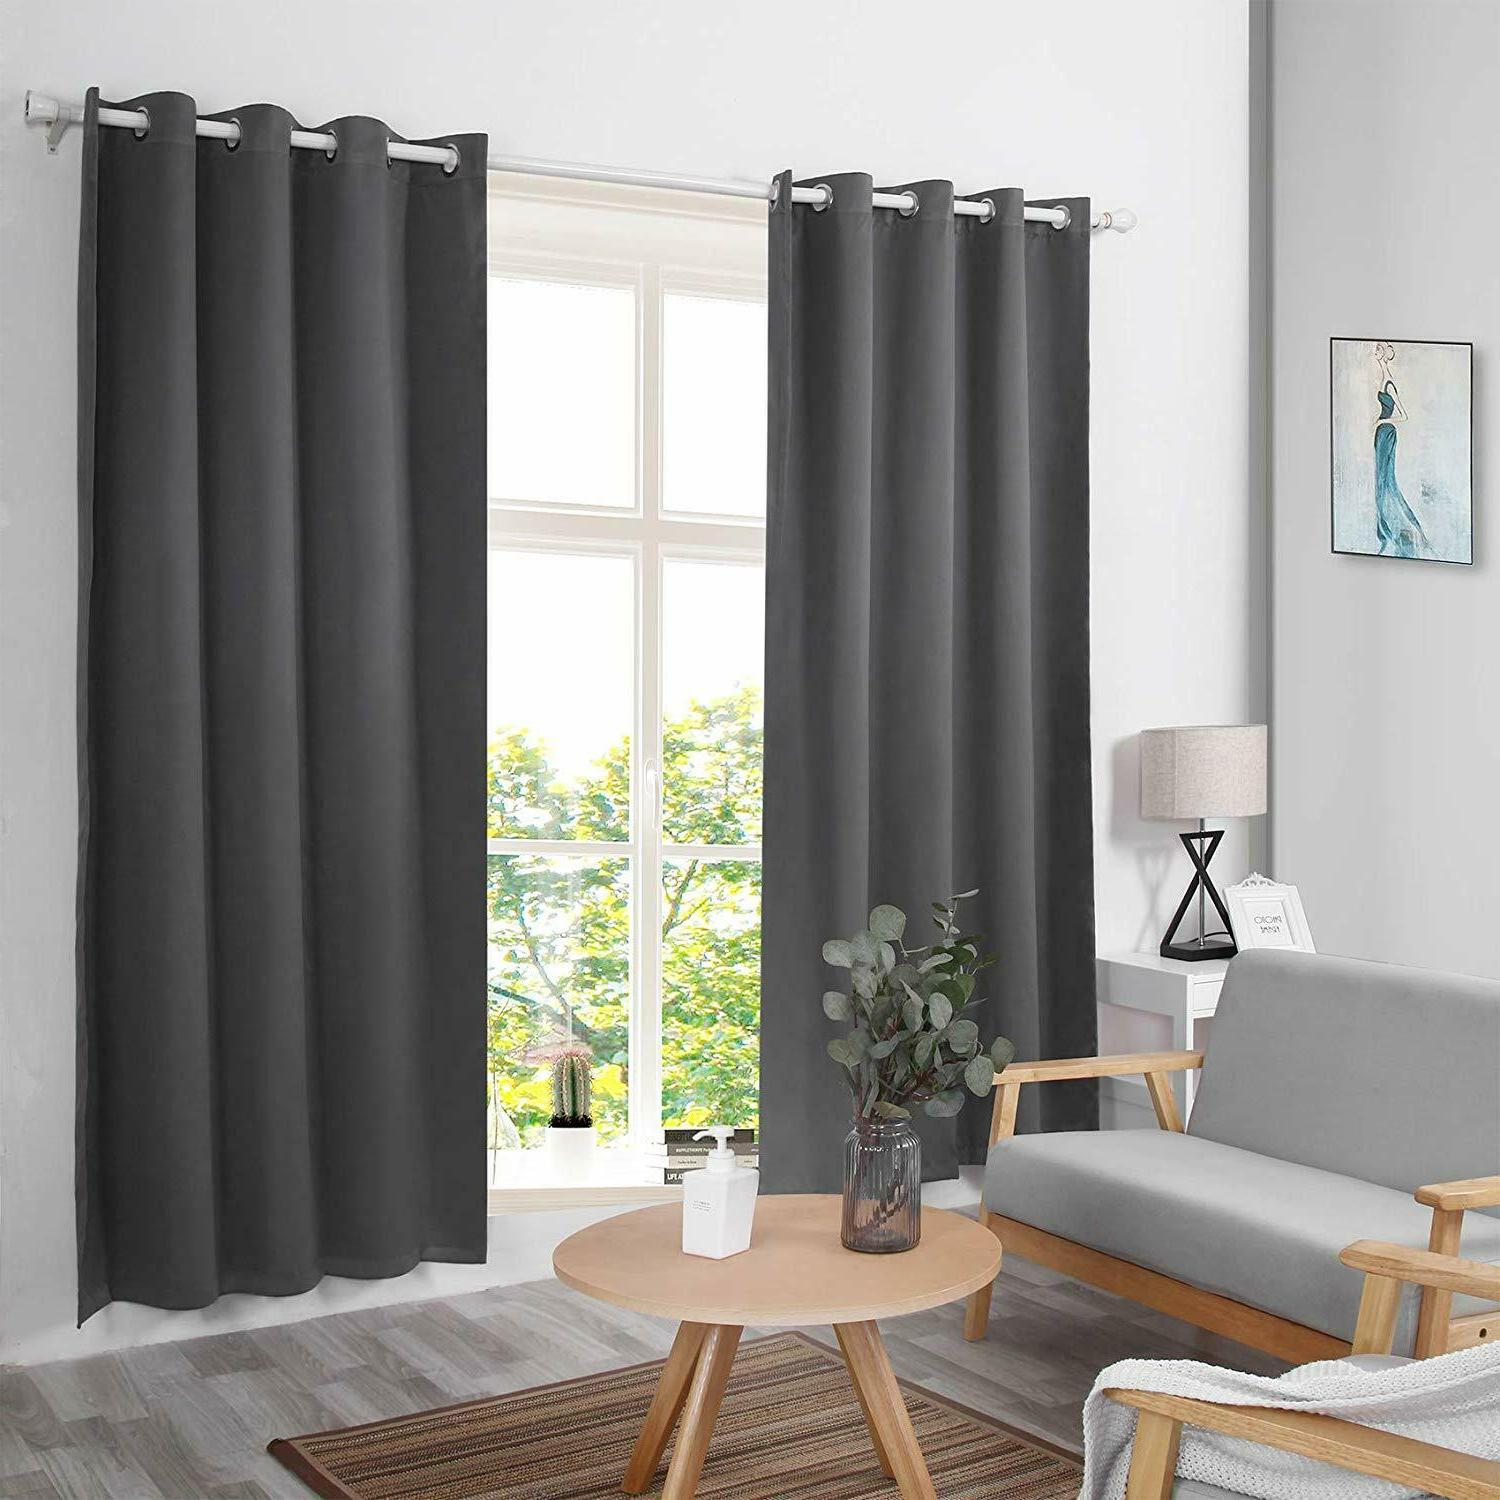 Gray Blackout Curtains - Eclipse Thermal